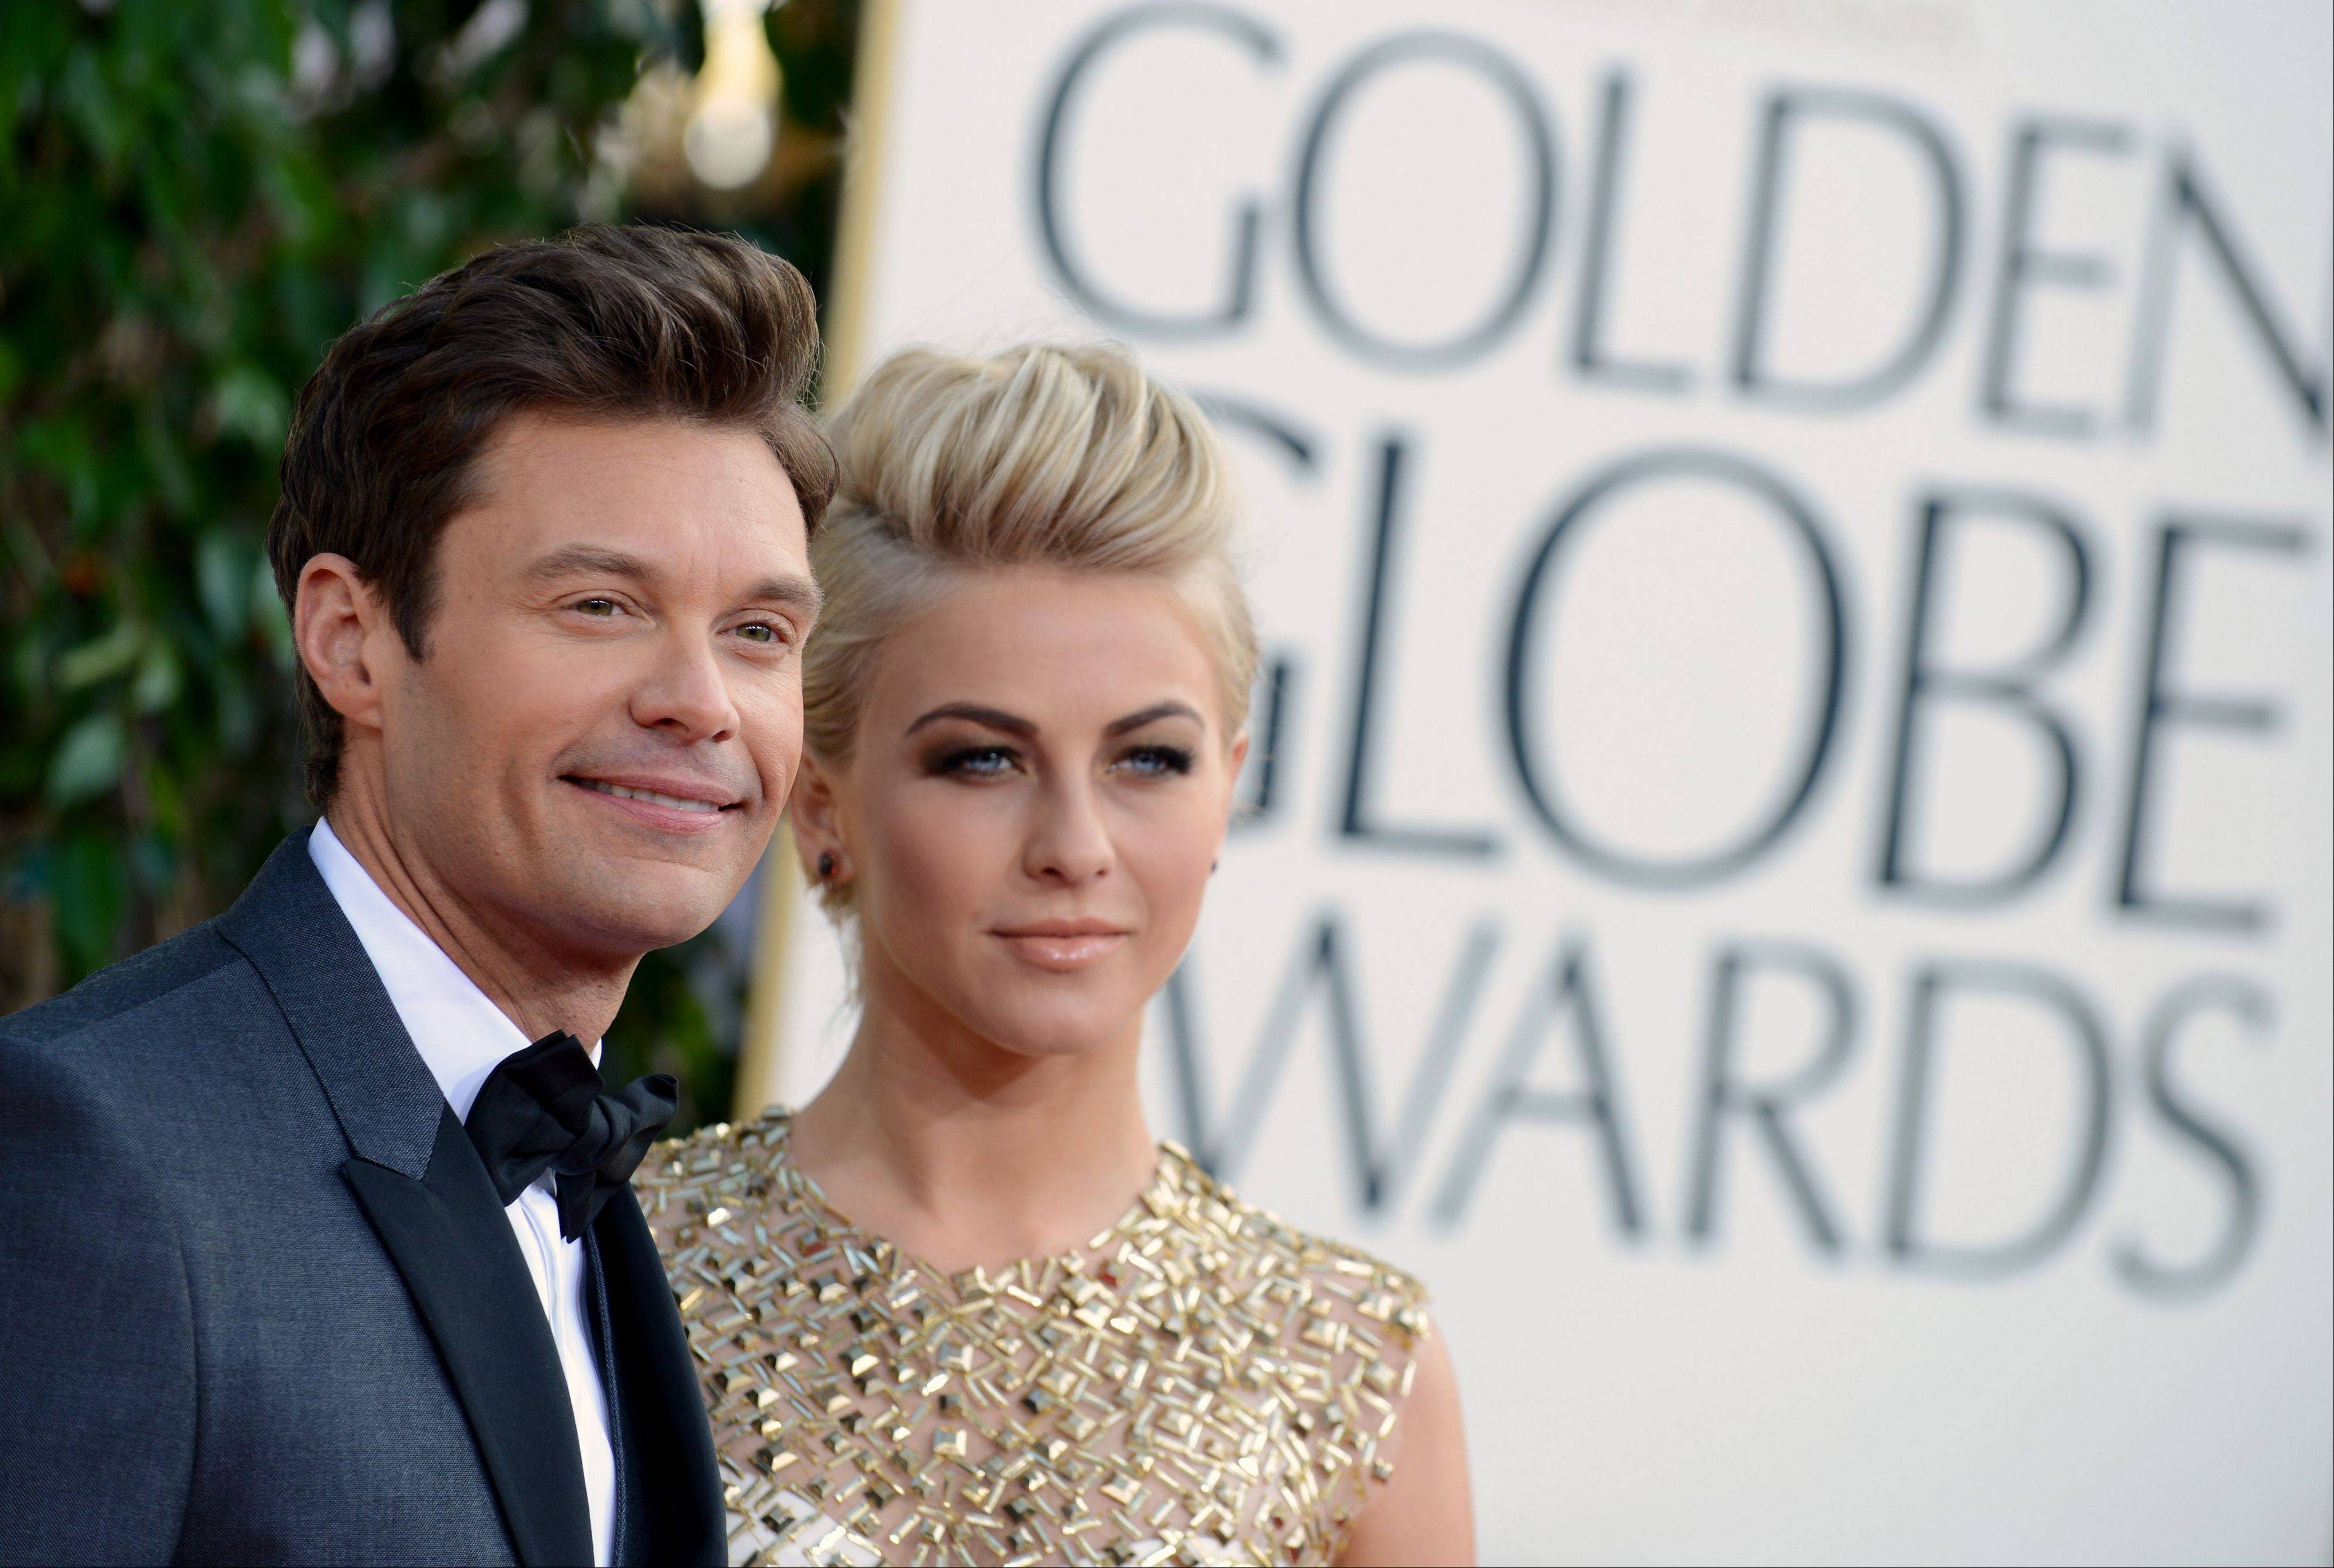 TV host Ryan Seacrest and actress Julianne Hough arrive at the 70th Annual Golden Globe Awards at the Beverly Hilton Hotel on Sunday Jan. 13, 2013, in Beverly Hills, Calif.